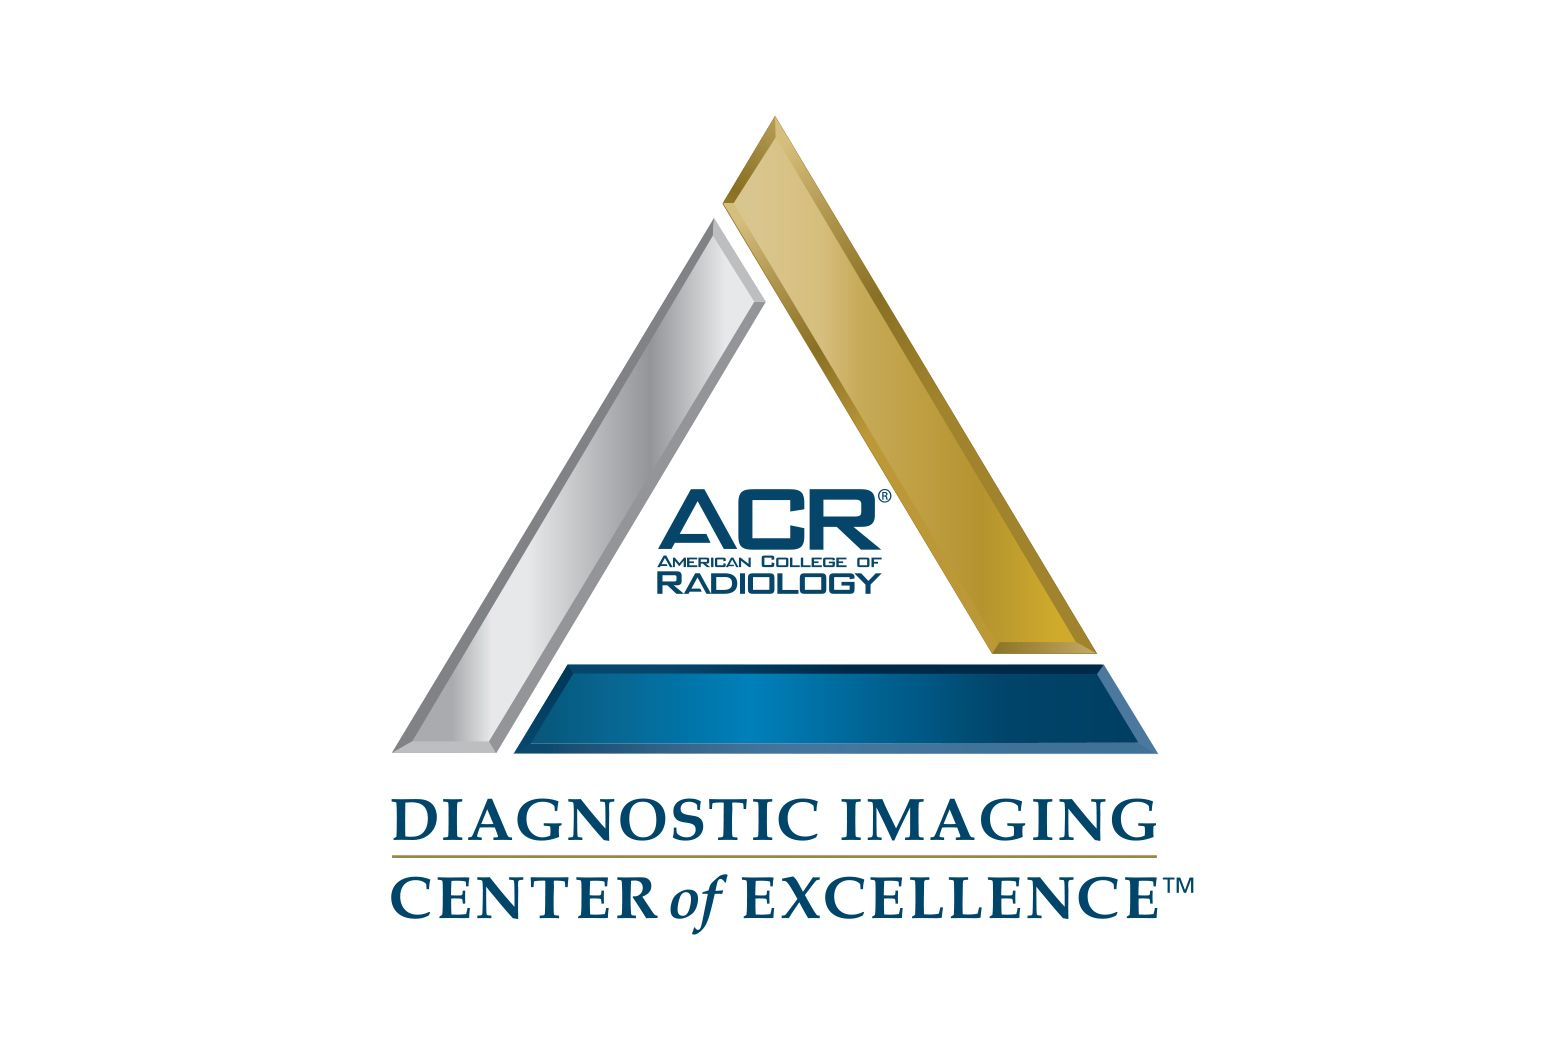 Badge for the Diagnostic Imaging Center of Excellence